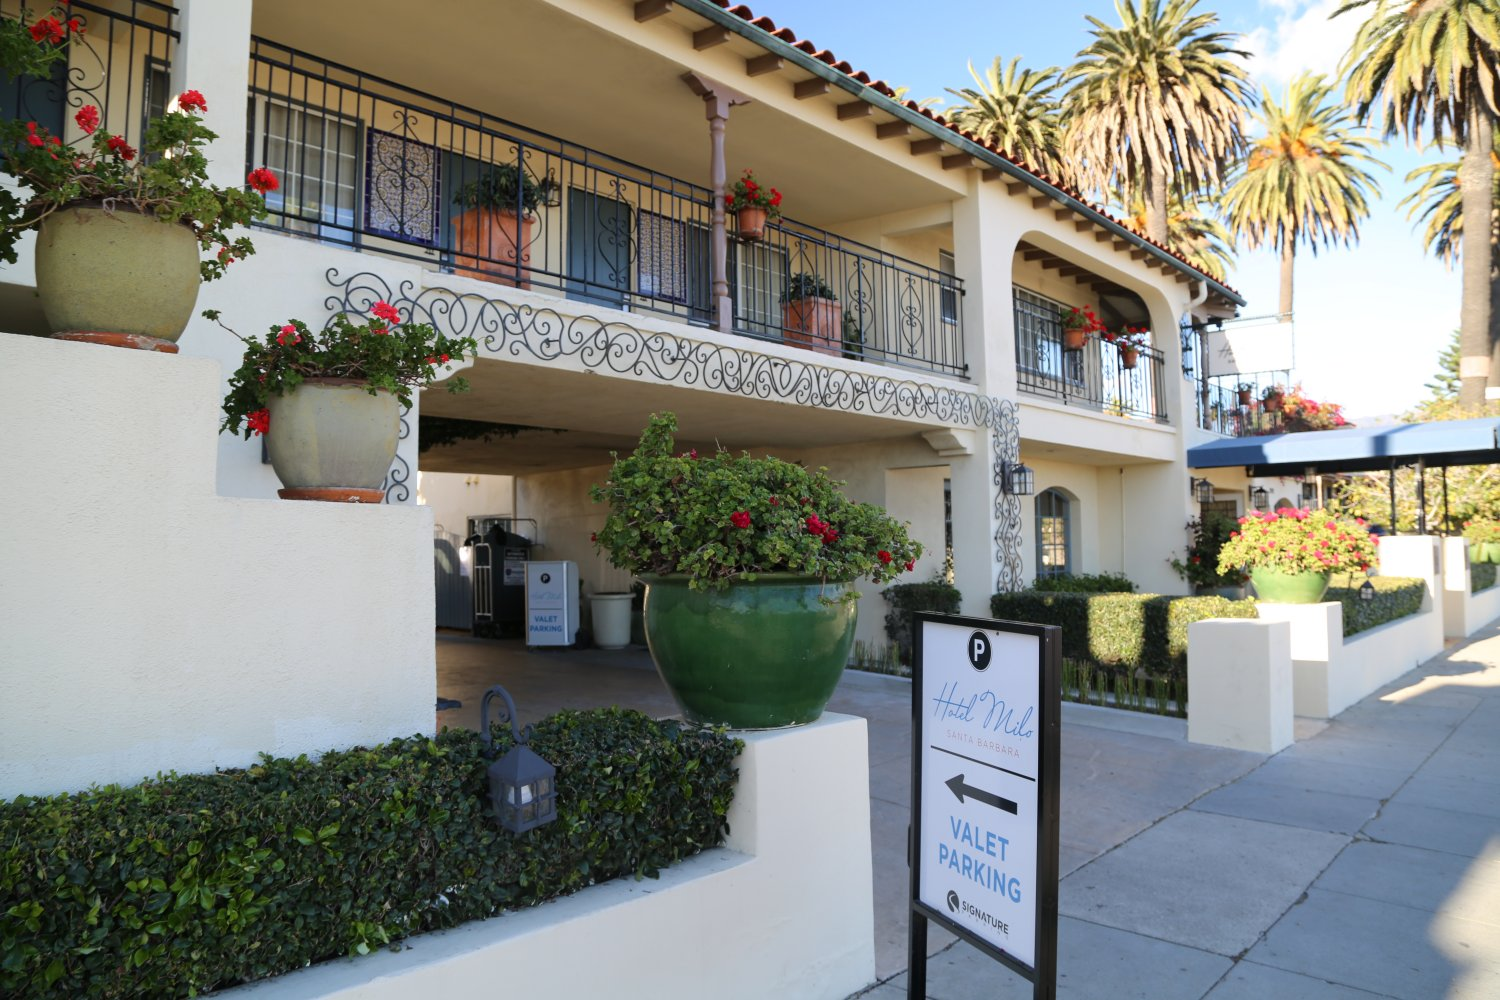 Hotel Milo Is Located Across From The Santa Barbara Waterfront Address 202 W Cabrillo Blvd This Hip And Trendy Almost Beach Front Property Invites